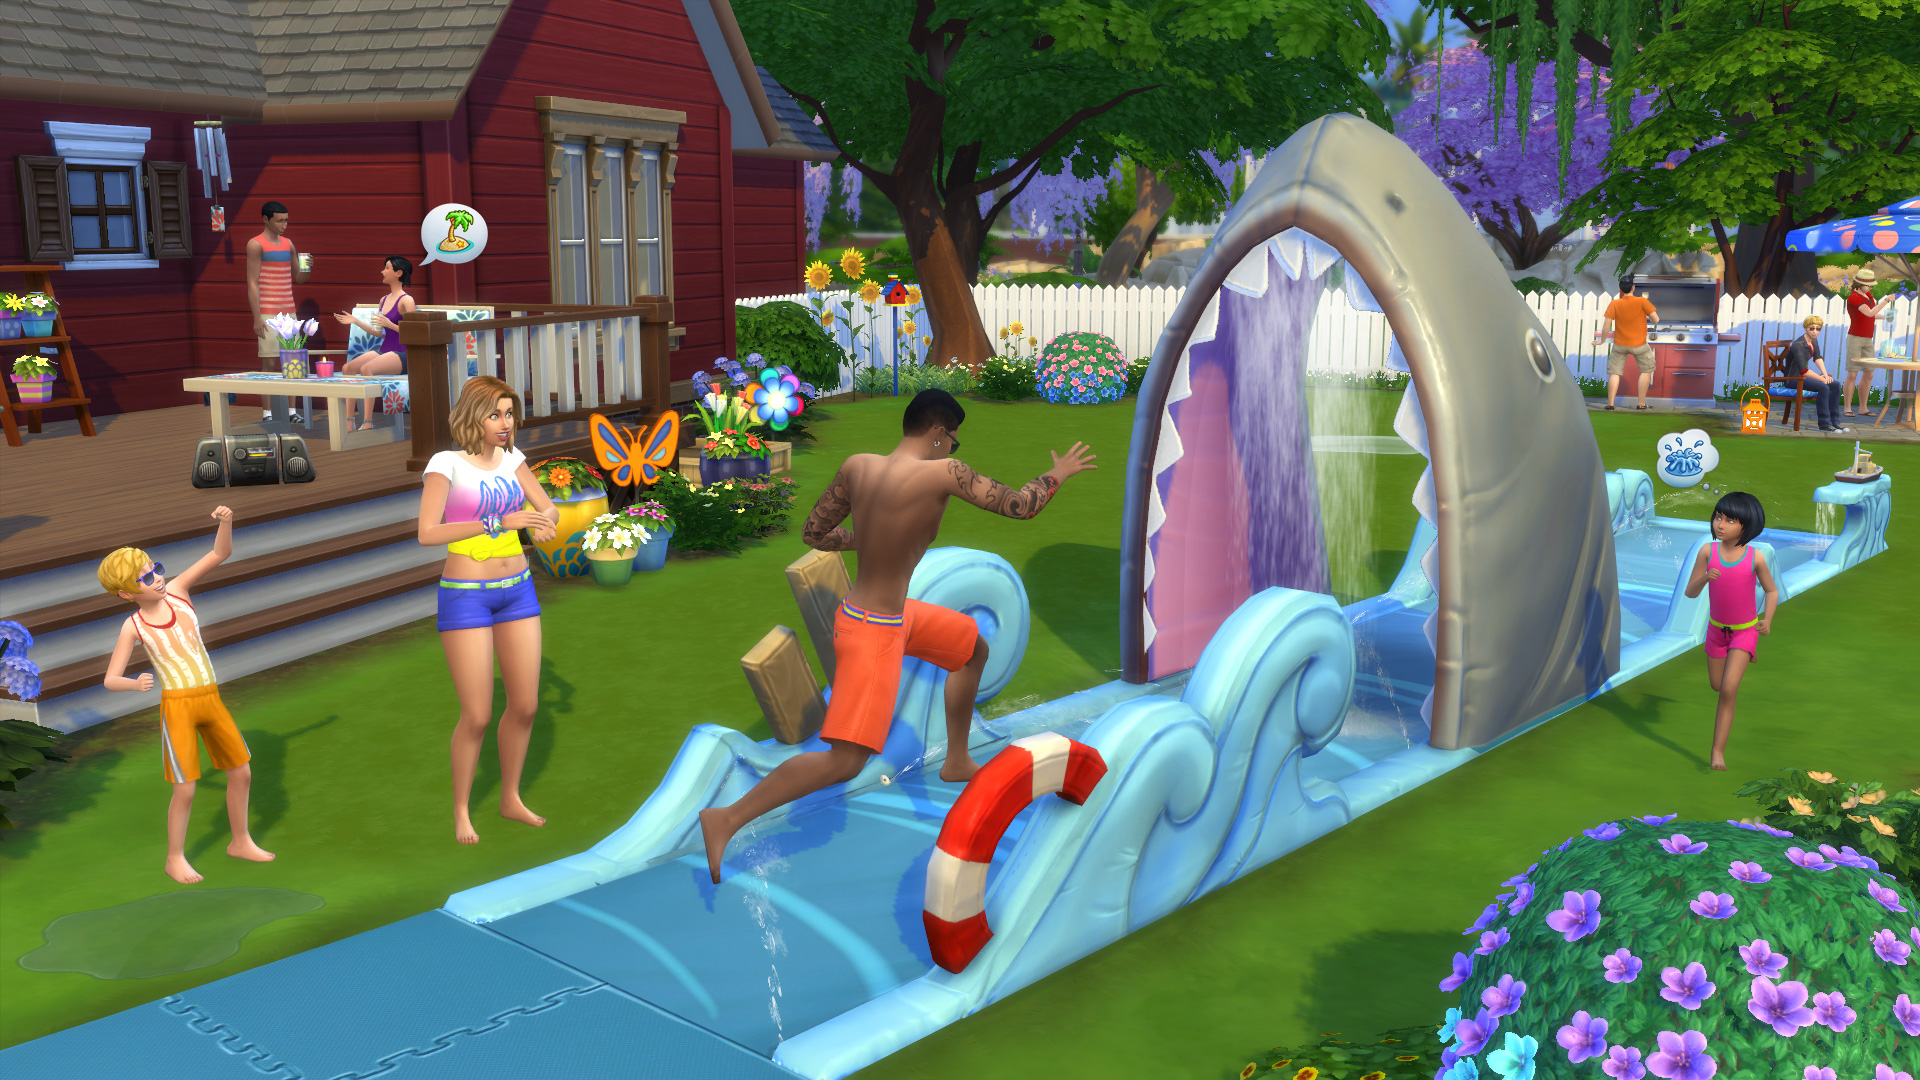 The Sims - Have Fun in the Sun With The Sims 4 Backyard Stuff - Official Site